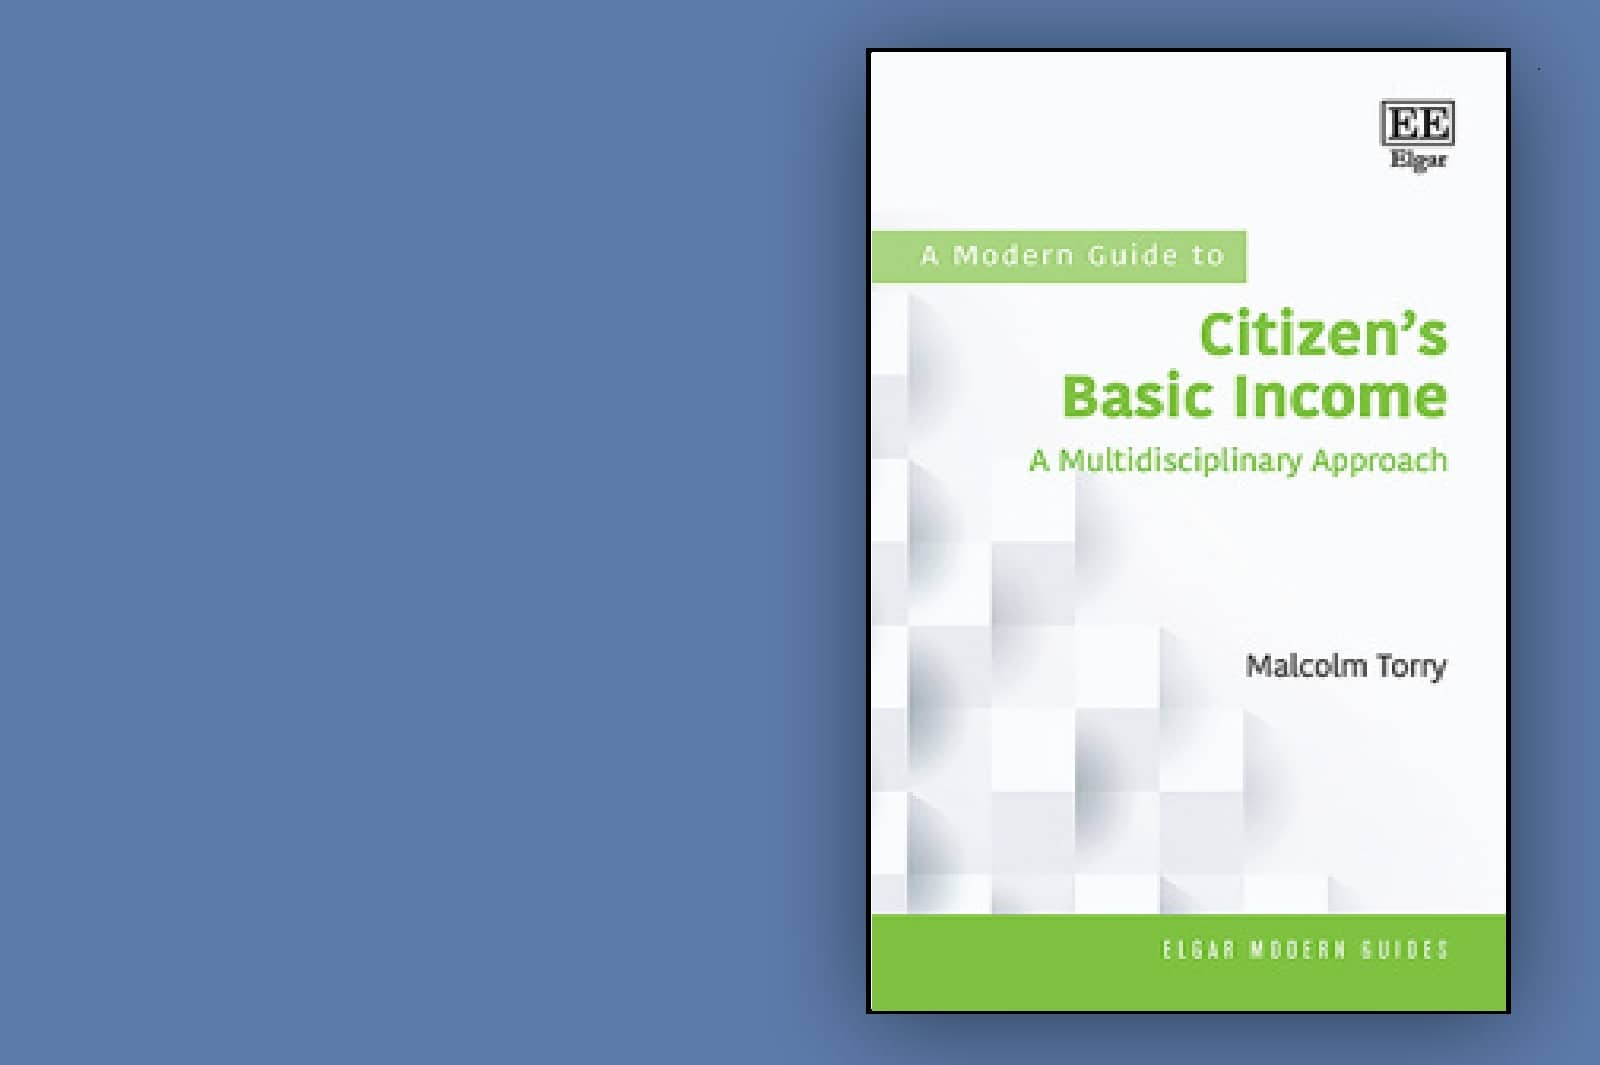 A Modern Guide to Citizen's Basic Income: A multidisciplinary approach